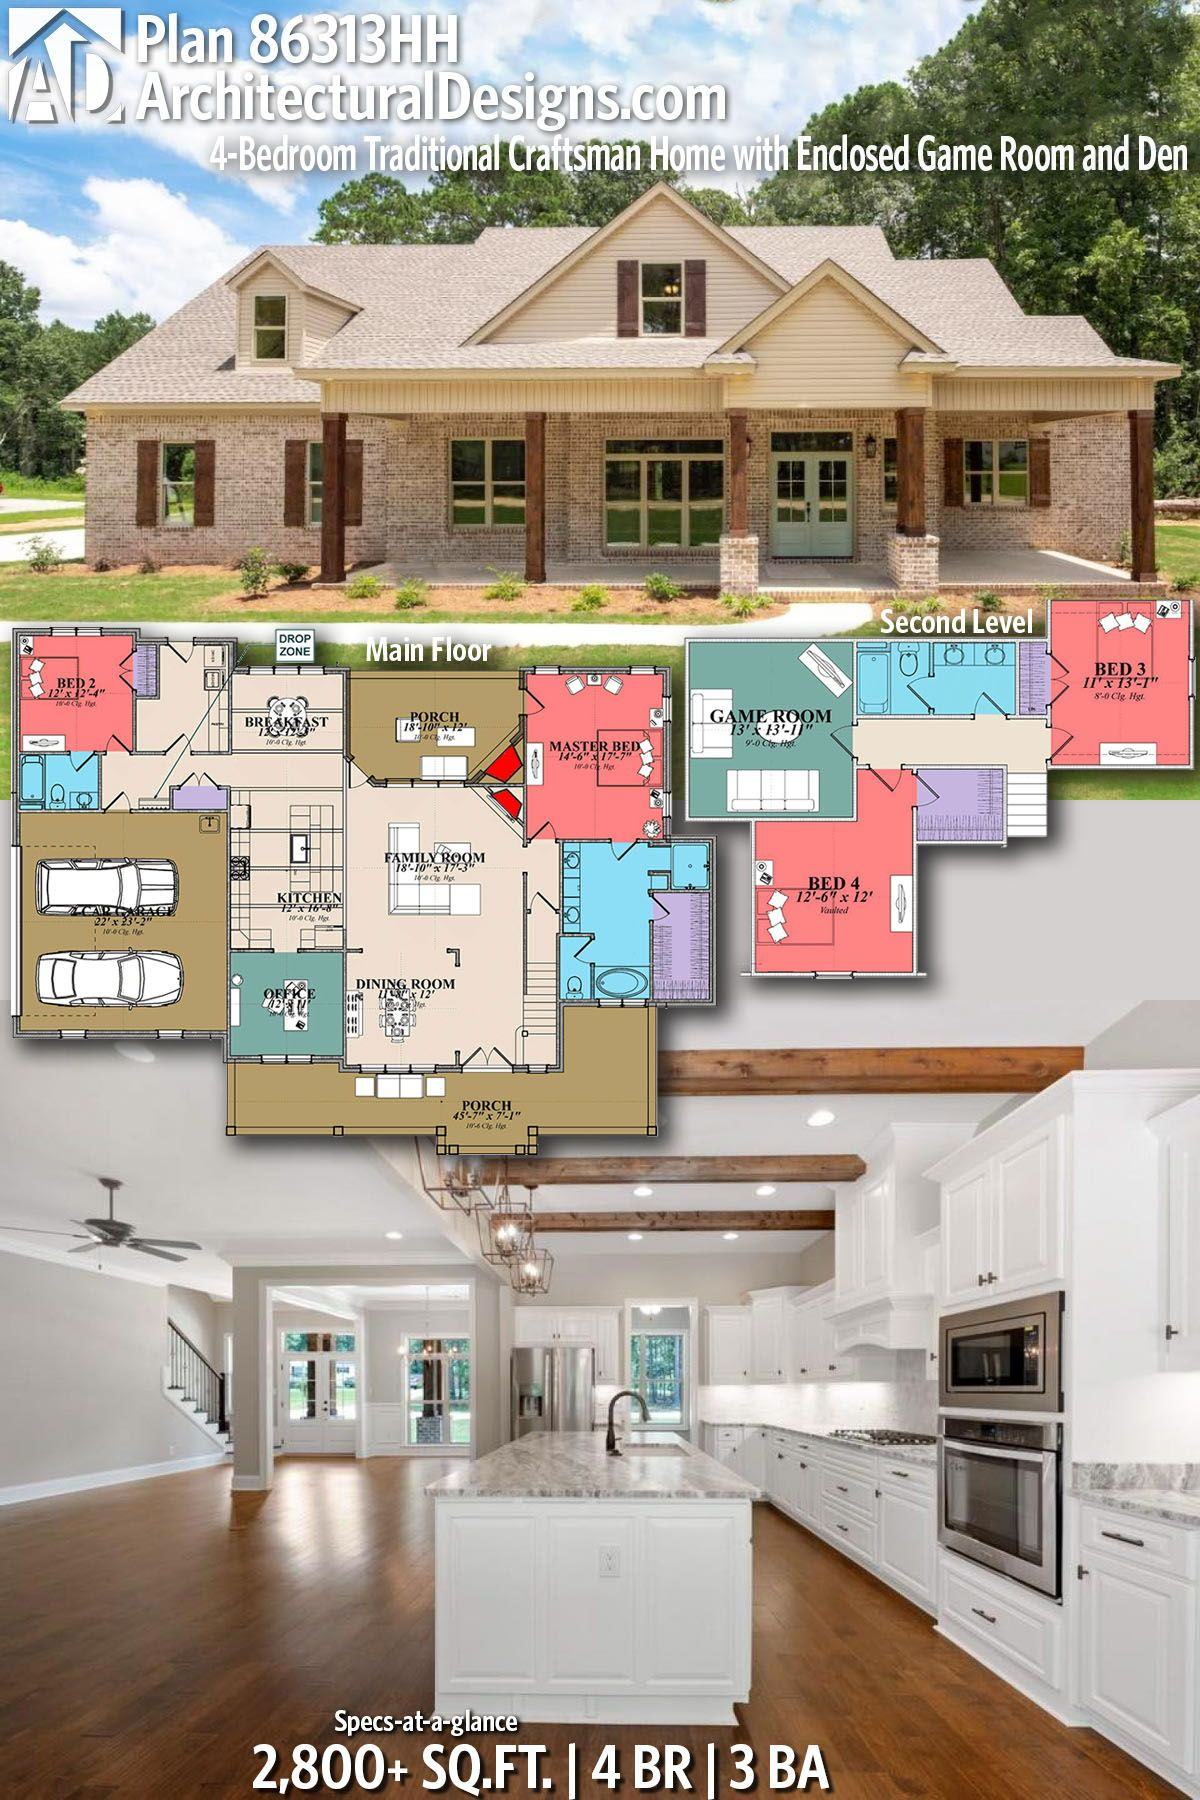 Architectural designs craftsman home plan hh gives you bedrooms baths and also house jw one level modern rh ar pinterest